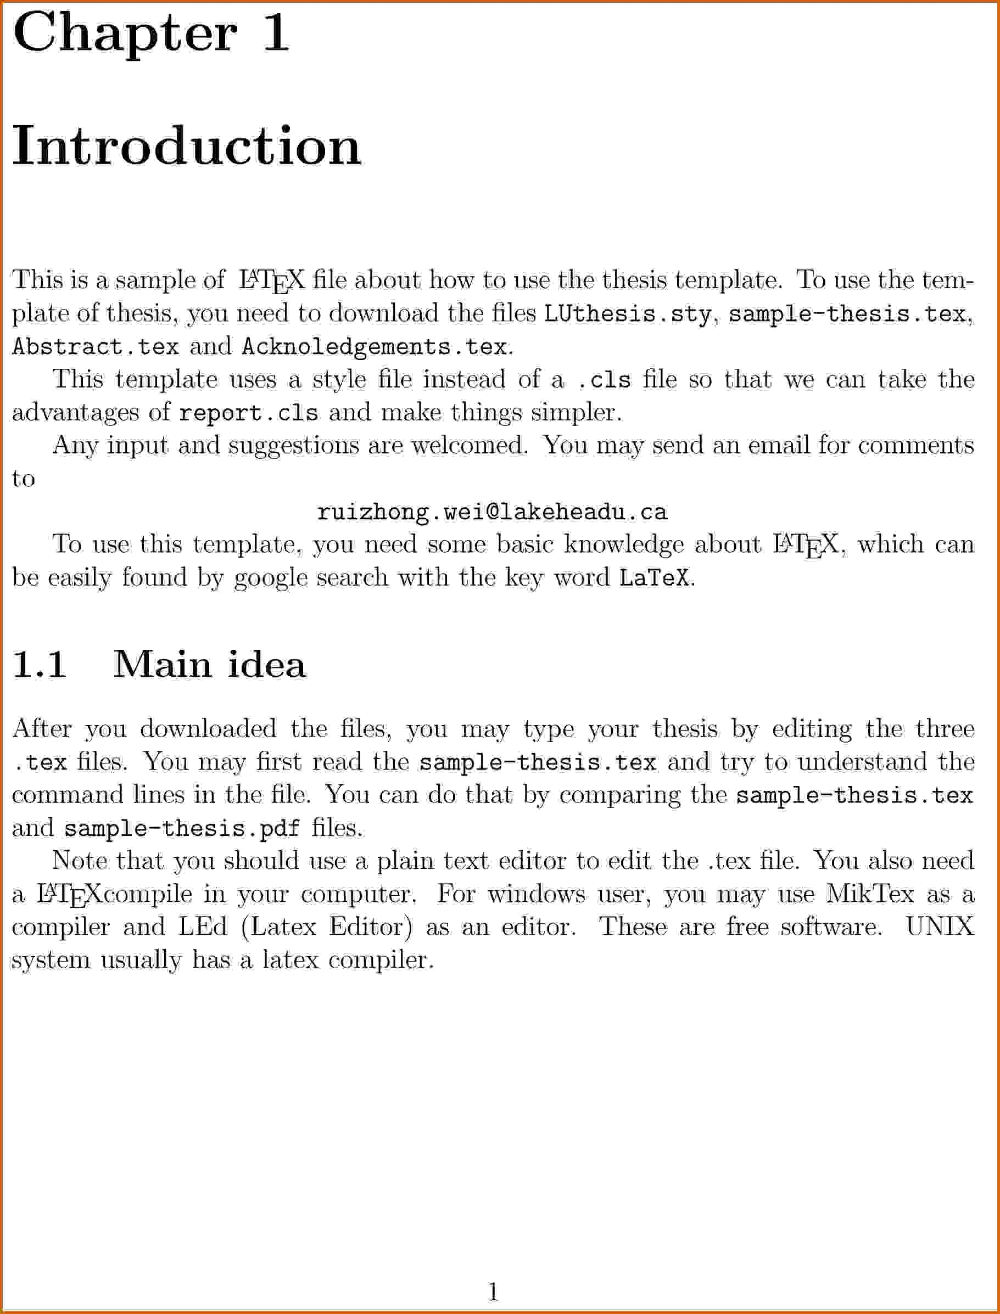 Essay Introduction Example Best Ideas Of An Marvelous At Format Throughout Introduction Template For Rep Introduction Examples Essay Introduction Example Essay